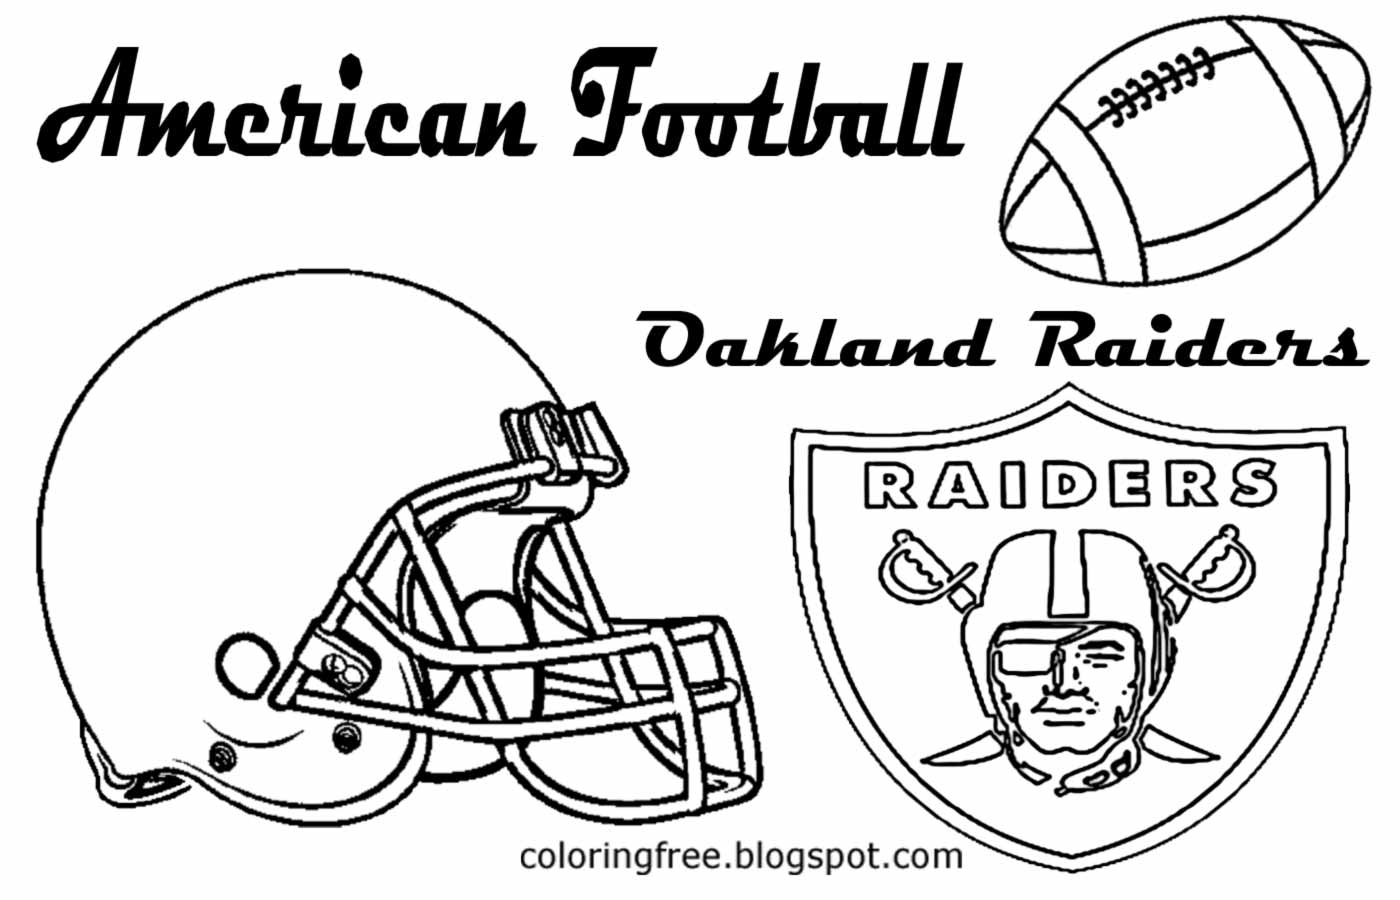 Oakland raiders coloring pages logo ~ Free Coloring Pages Printable Pictures To Color Kids ...